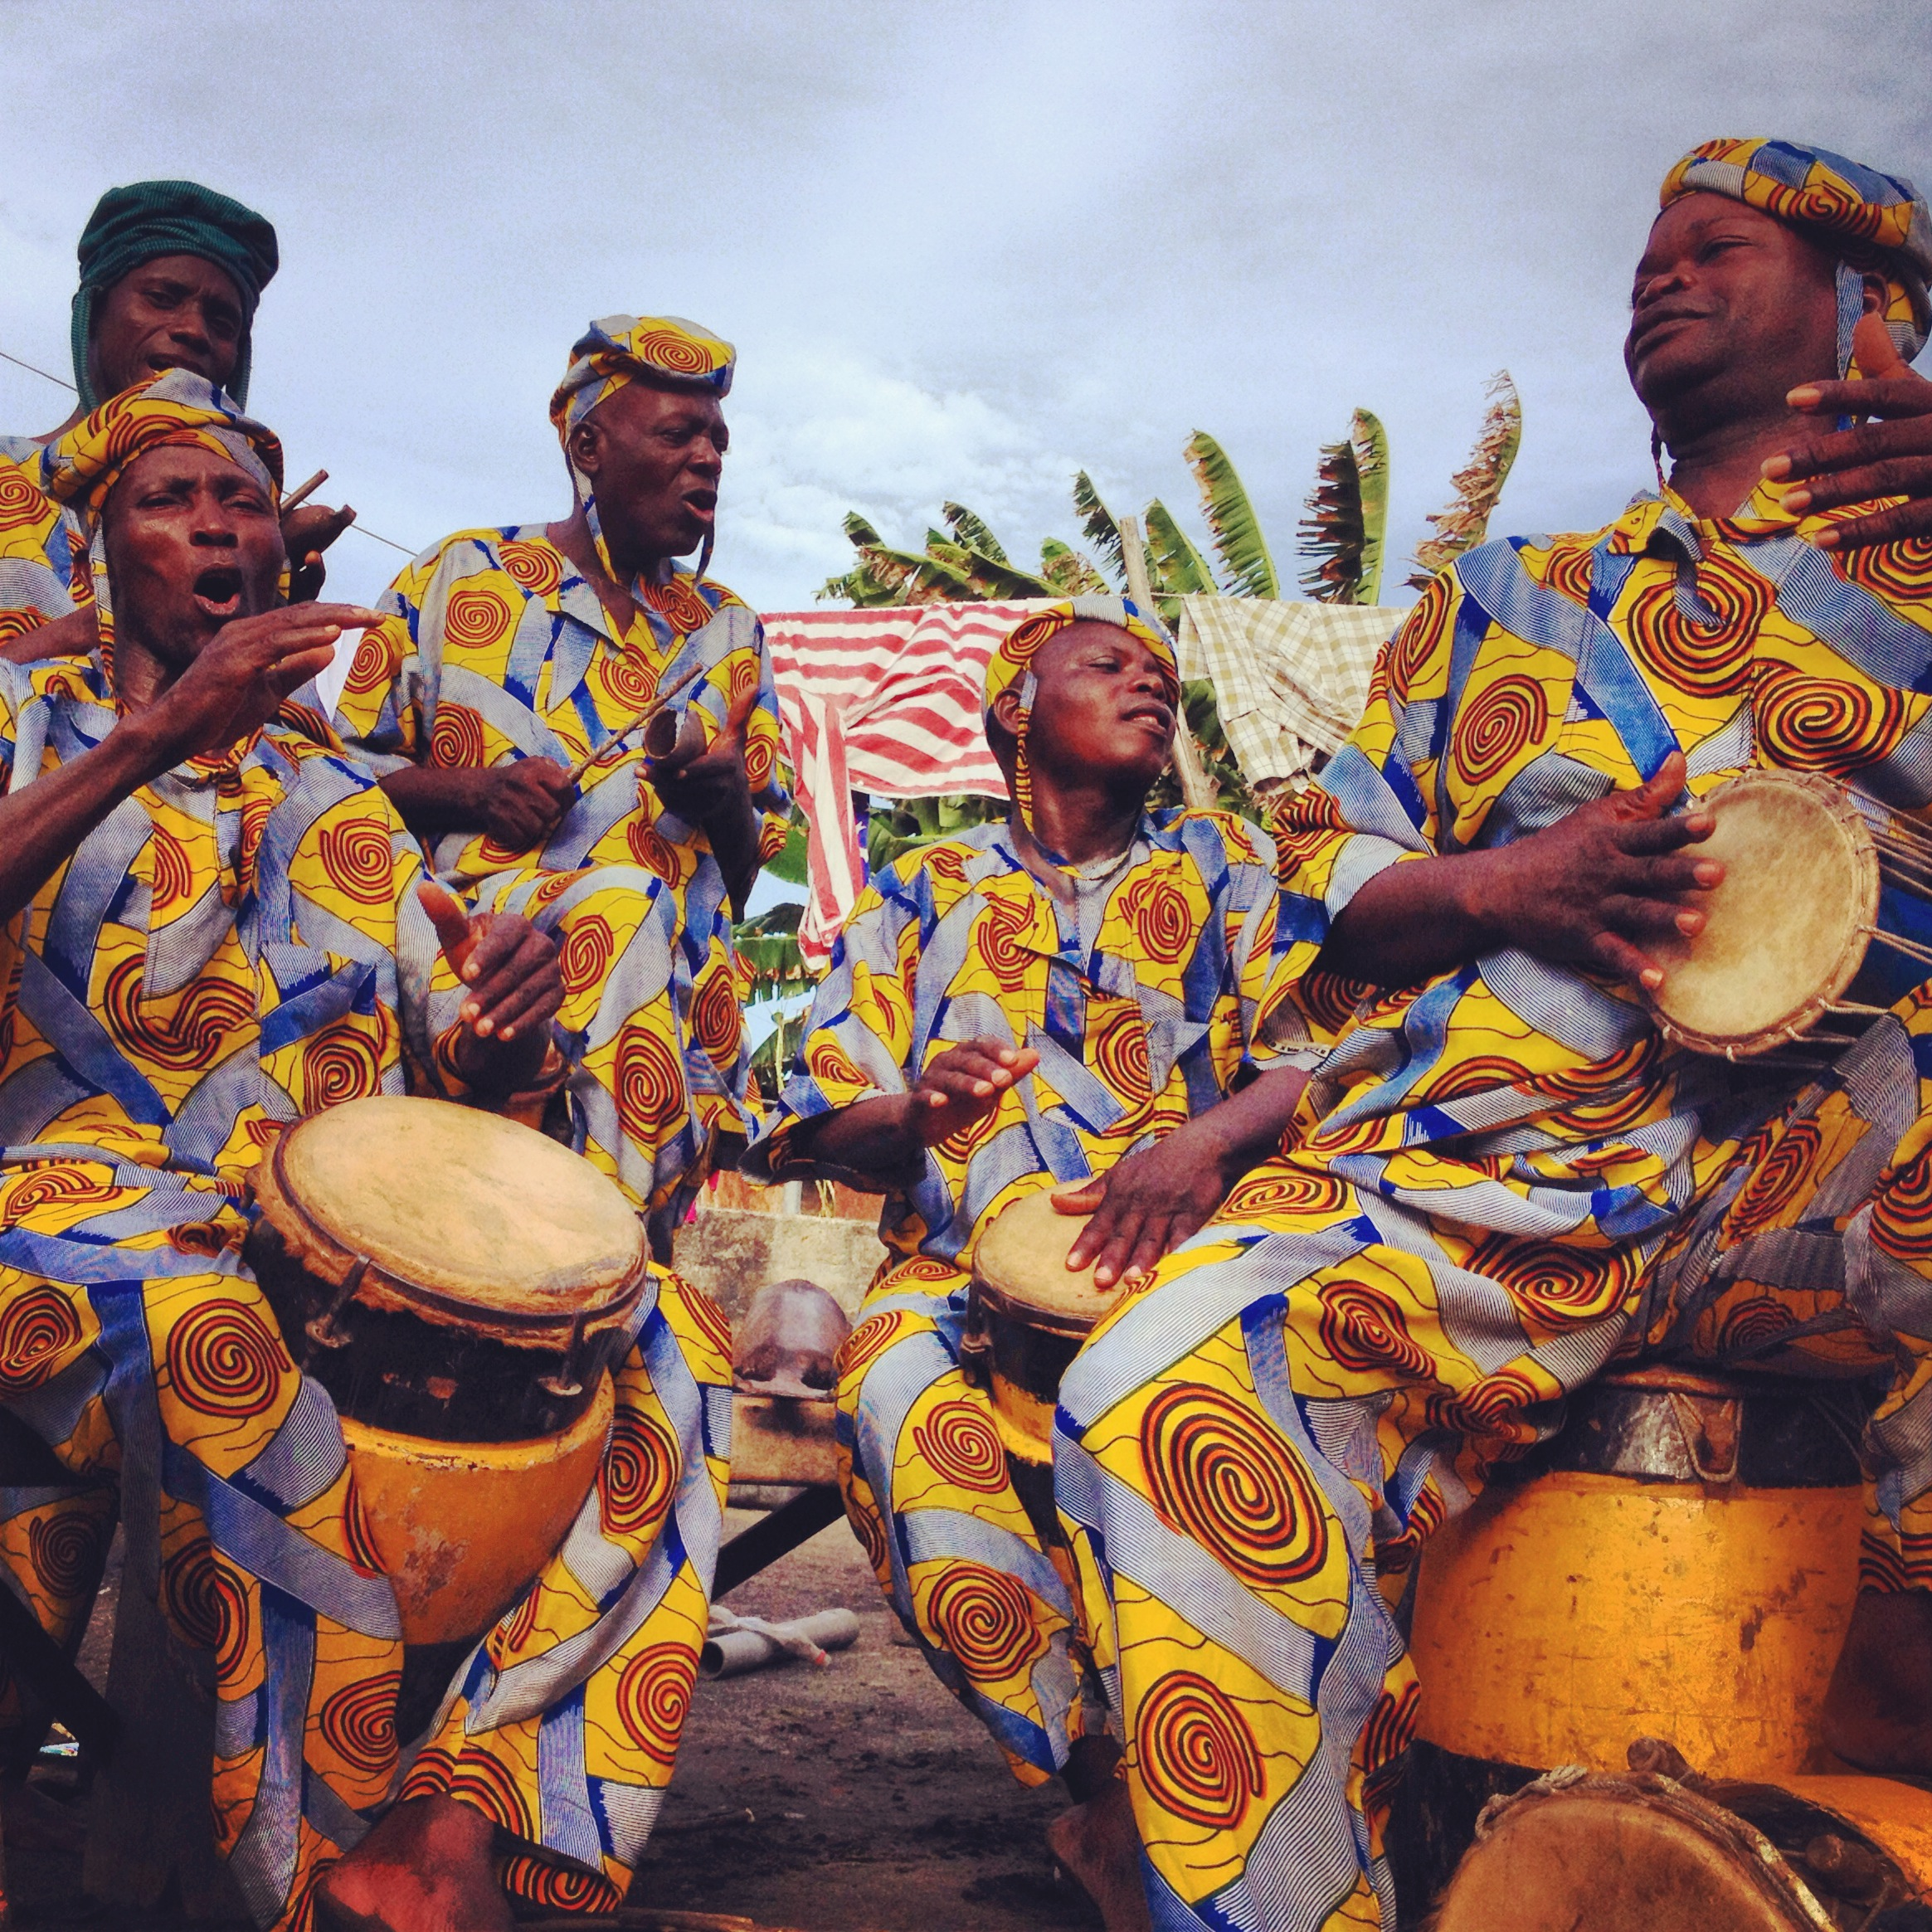 Drummers from the Kini Kini Cultural Troupe performing a traditional rhythm called Agbehoun